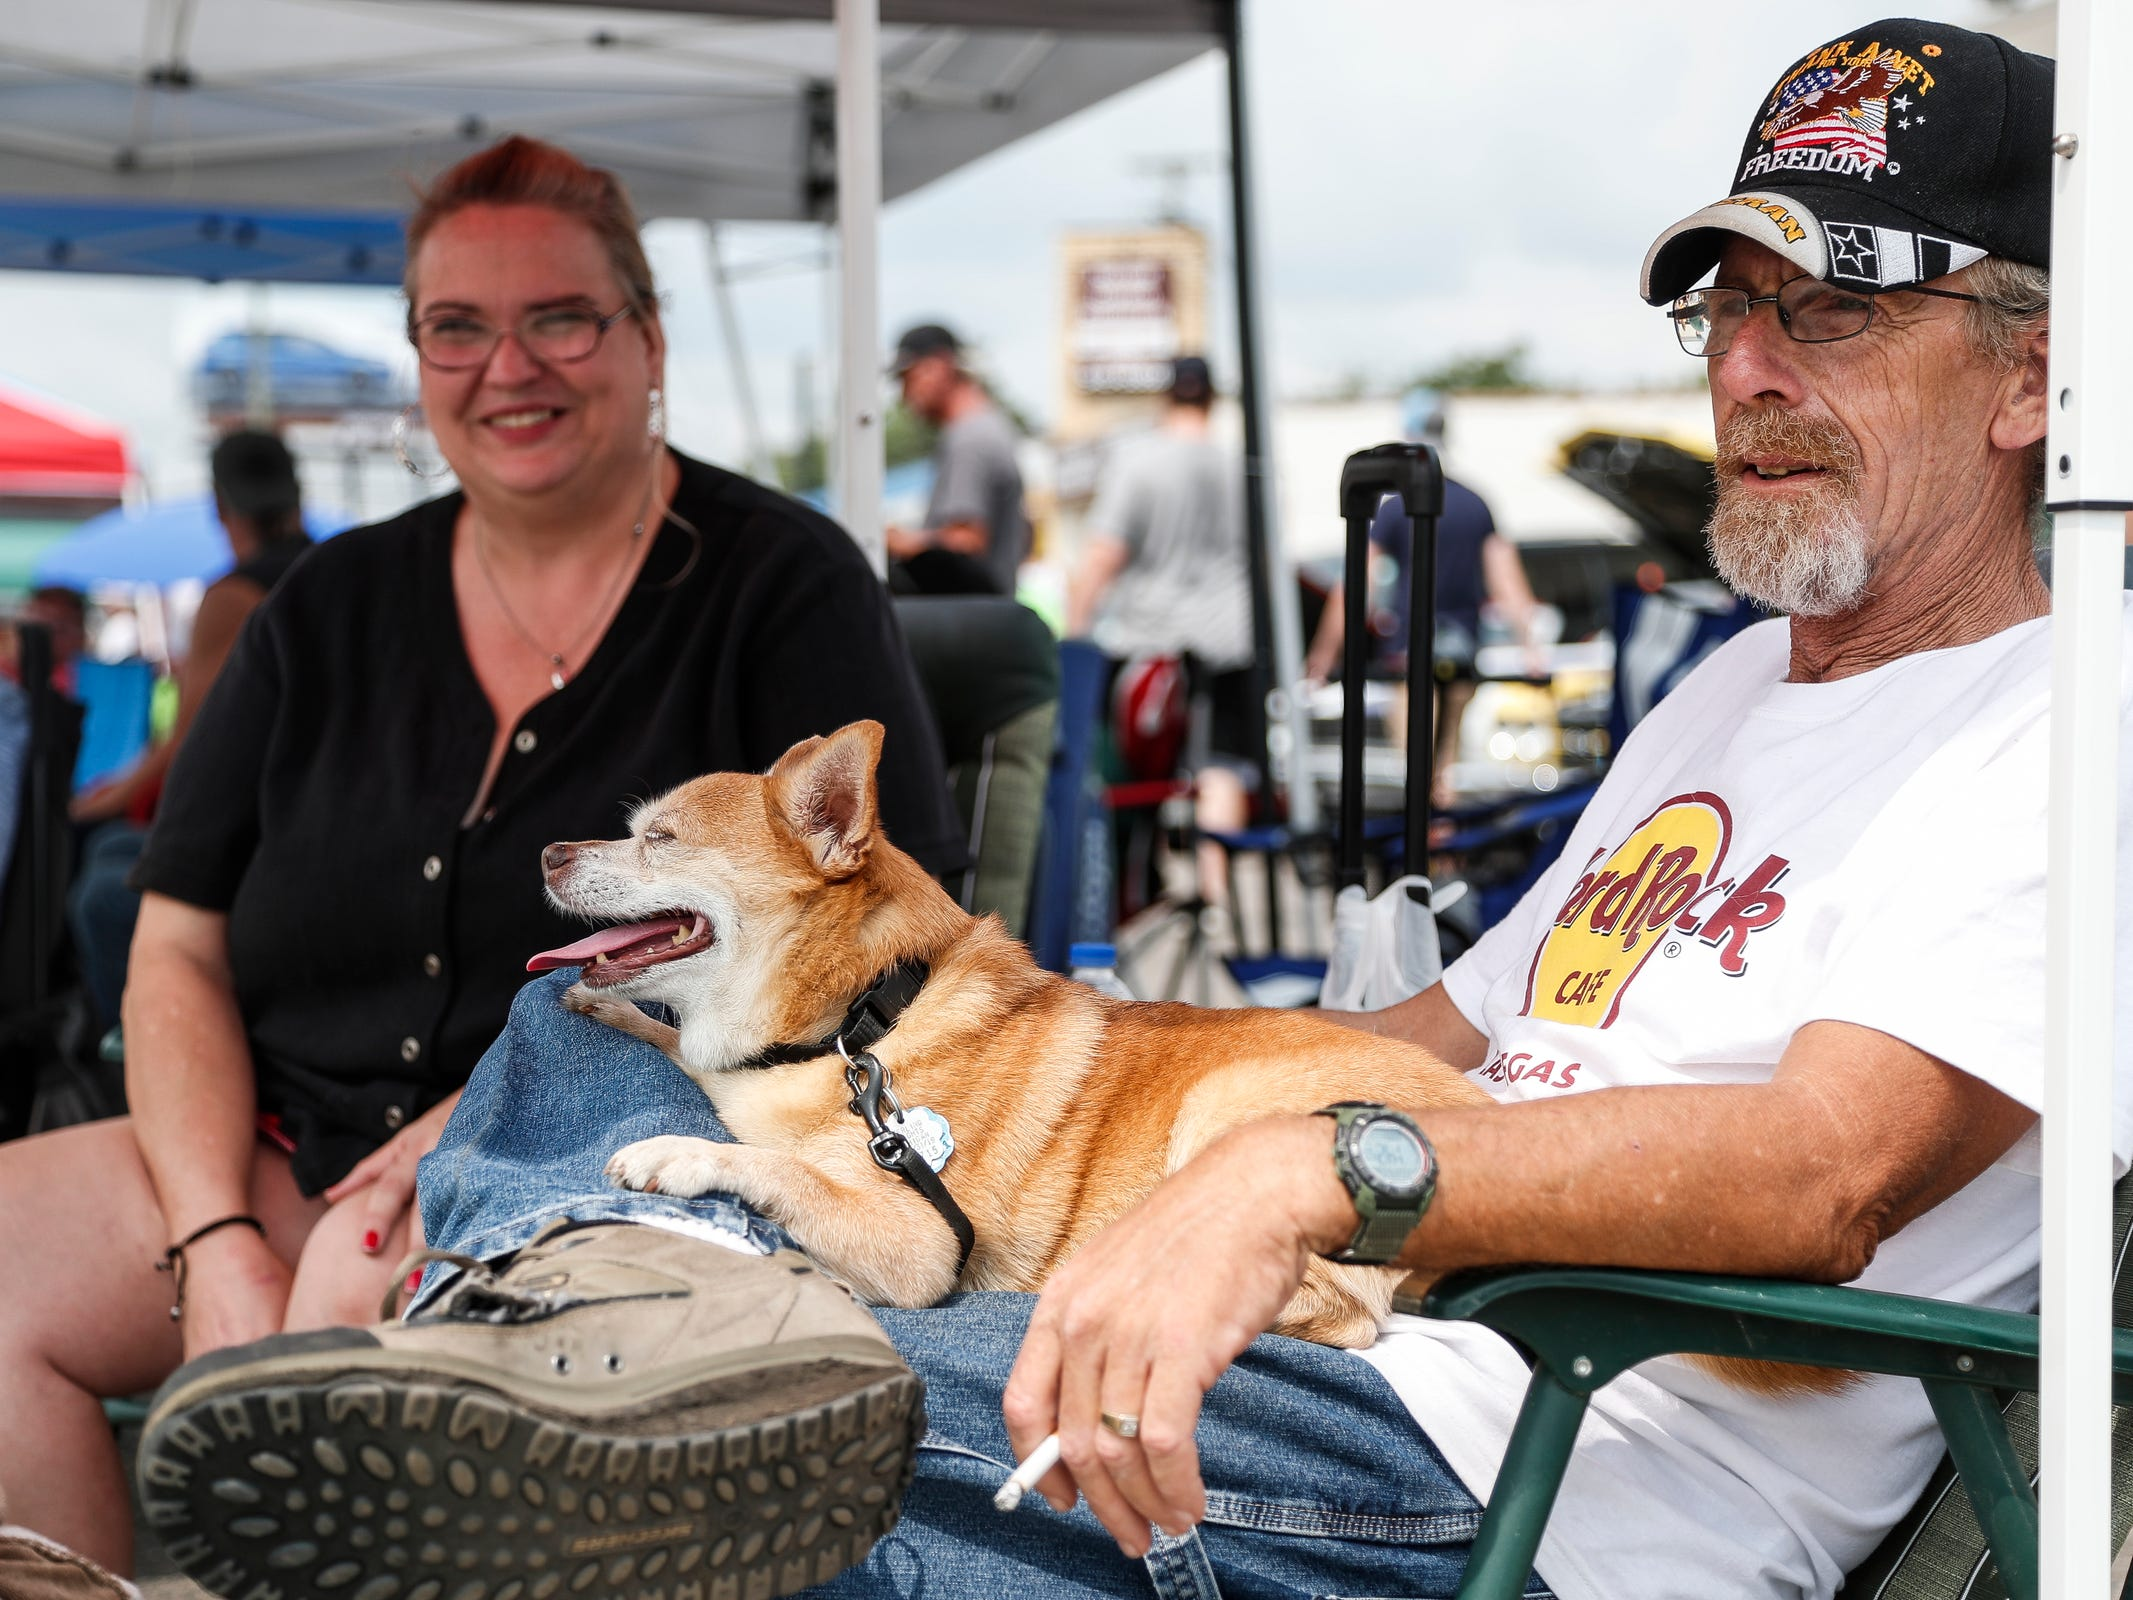 Norm Edgar of Sterling Heights, with his dog Chico, and girlfriend Mellissa Bonar of Bainbridge, Ohio, watch classic cars cruising along Woodward Avenue in Royal Oak during Woodward Dream Cruise, Saturday, August 18, 2018.